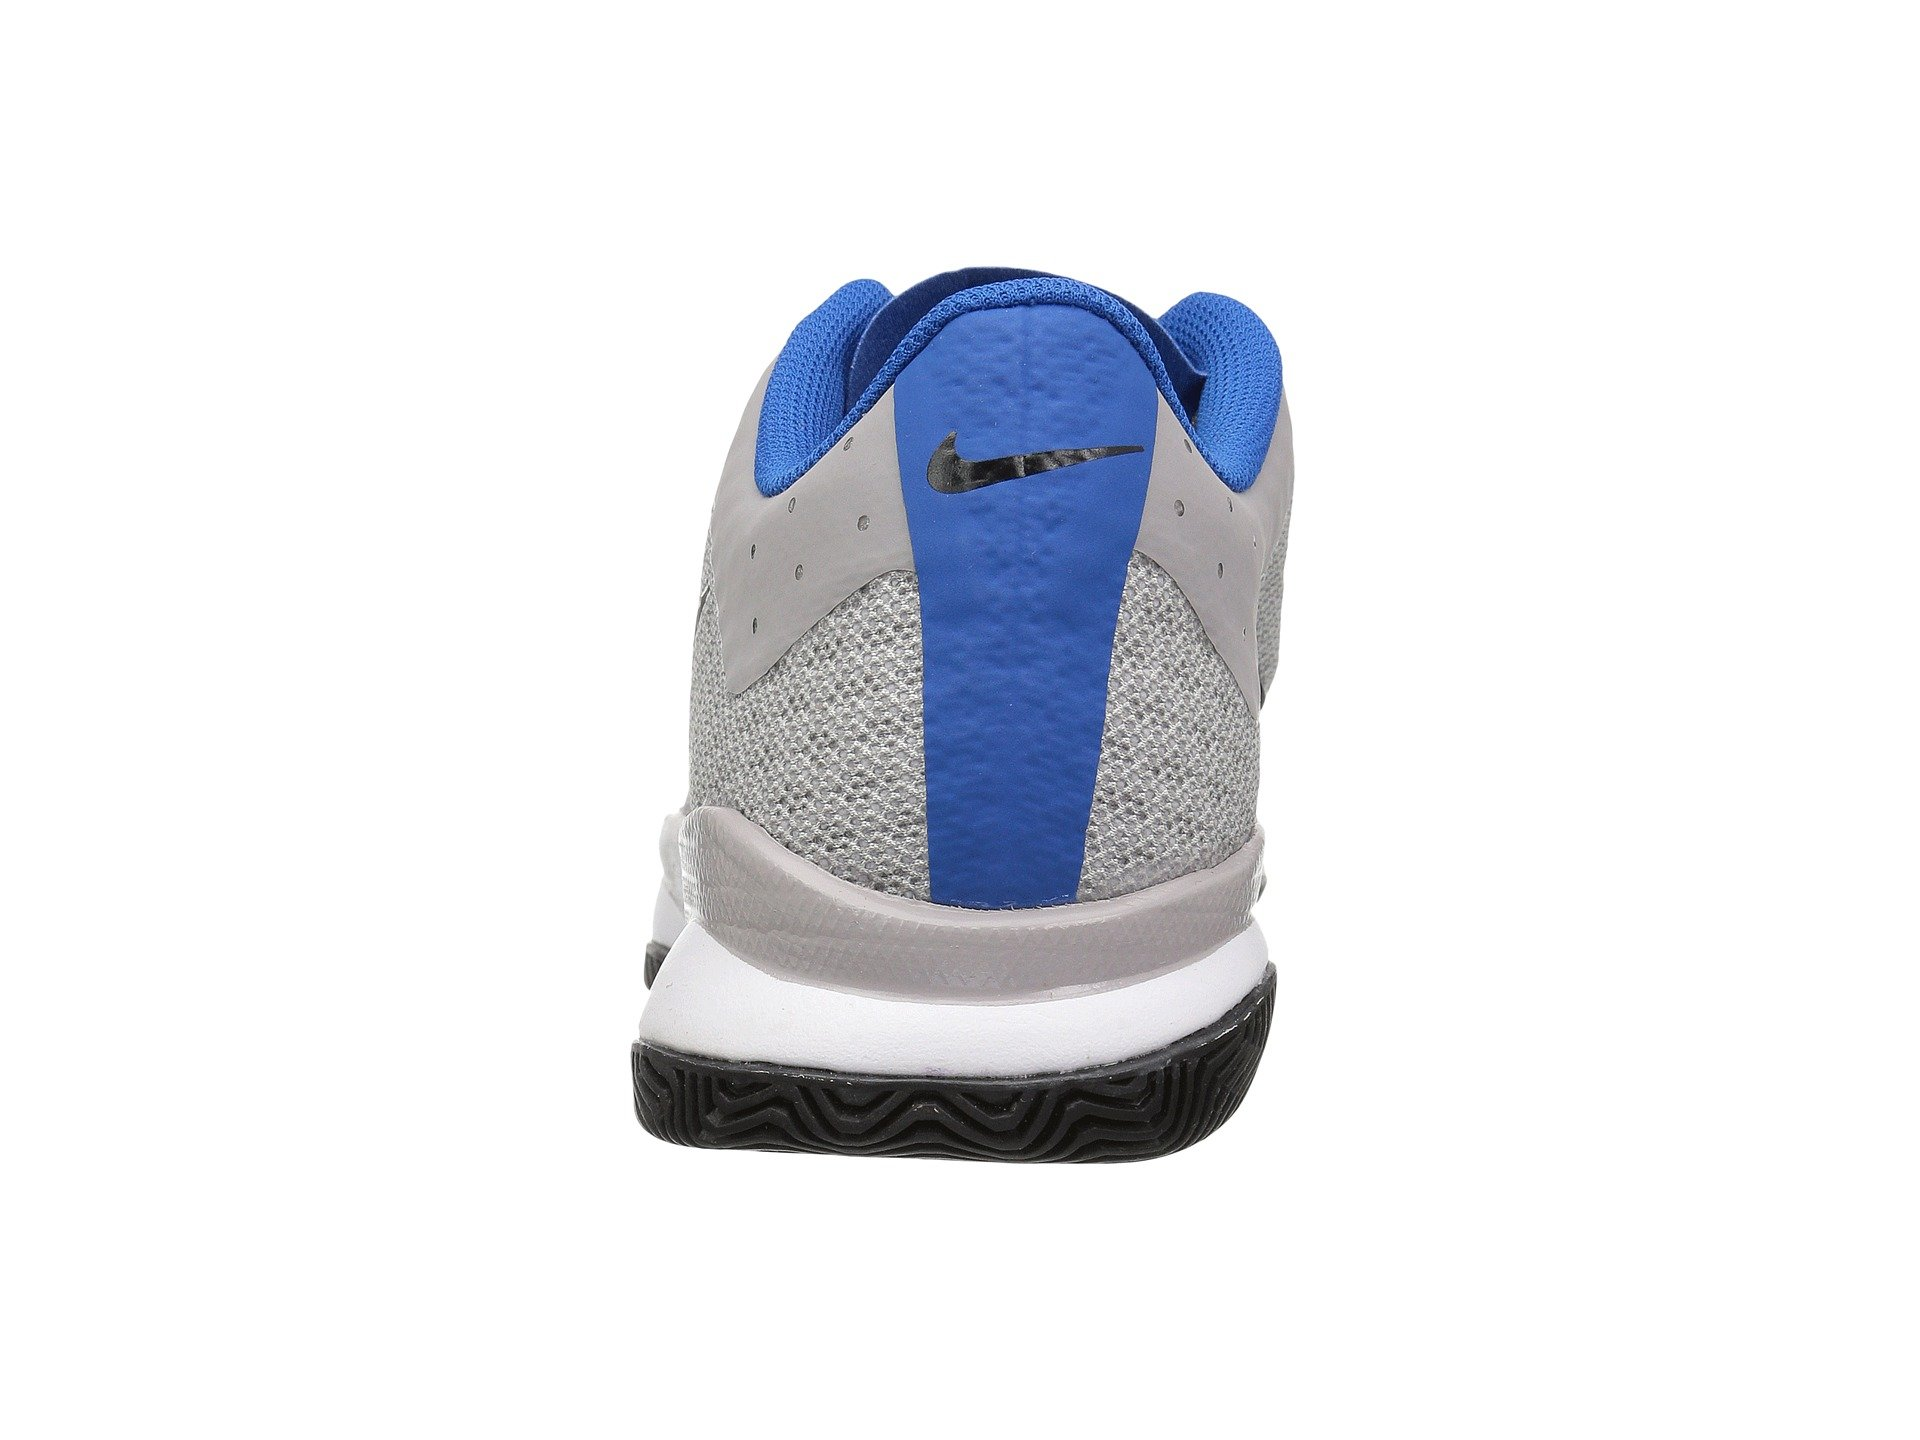 bd2093bfd1454 kids nike roshe. Do not neglect your feet. The contour series come with  full grain leather uppers which offer outstanding comfort